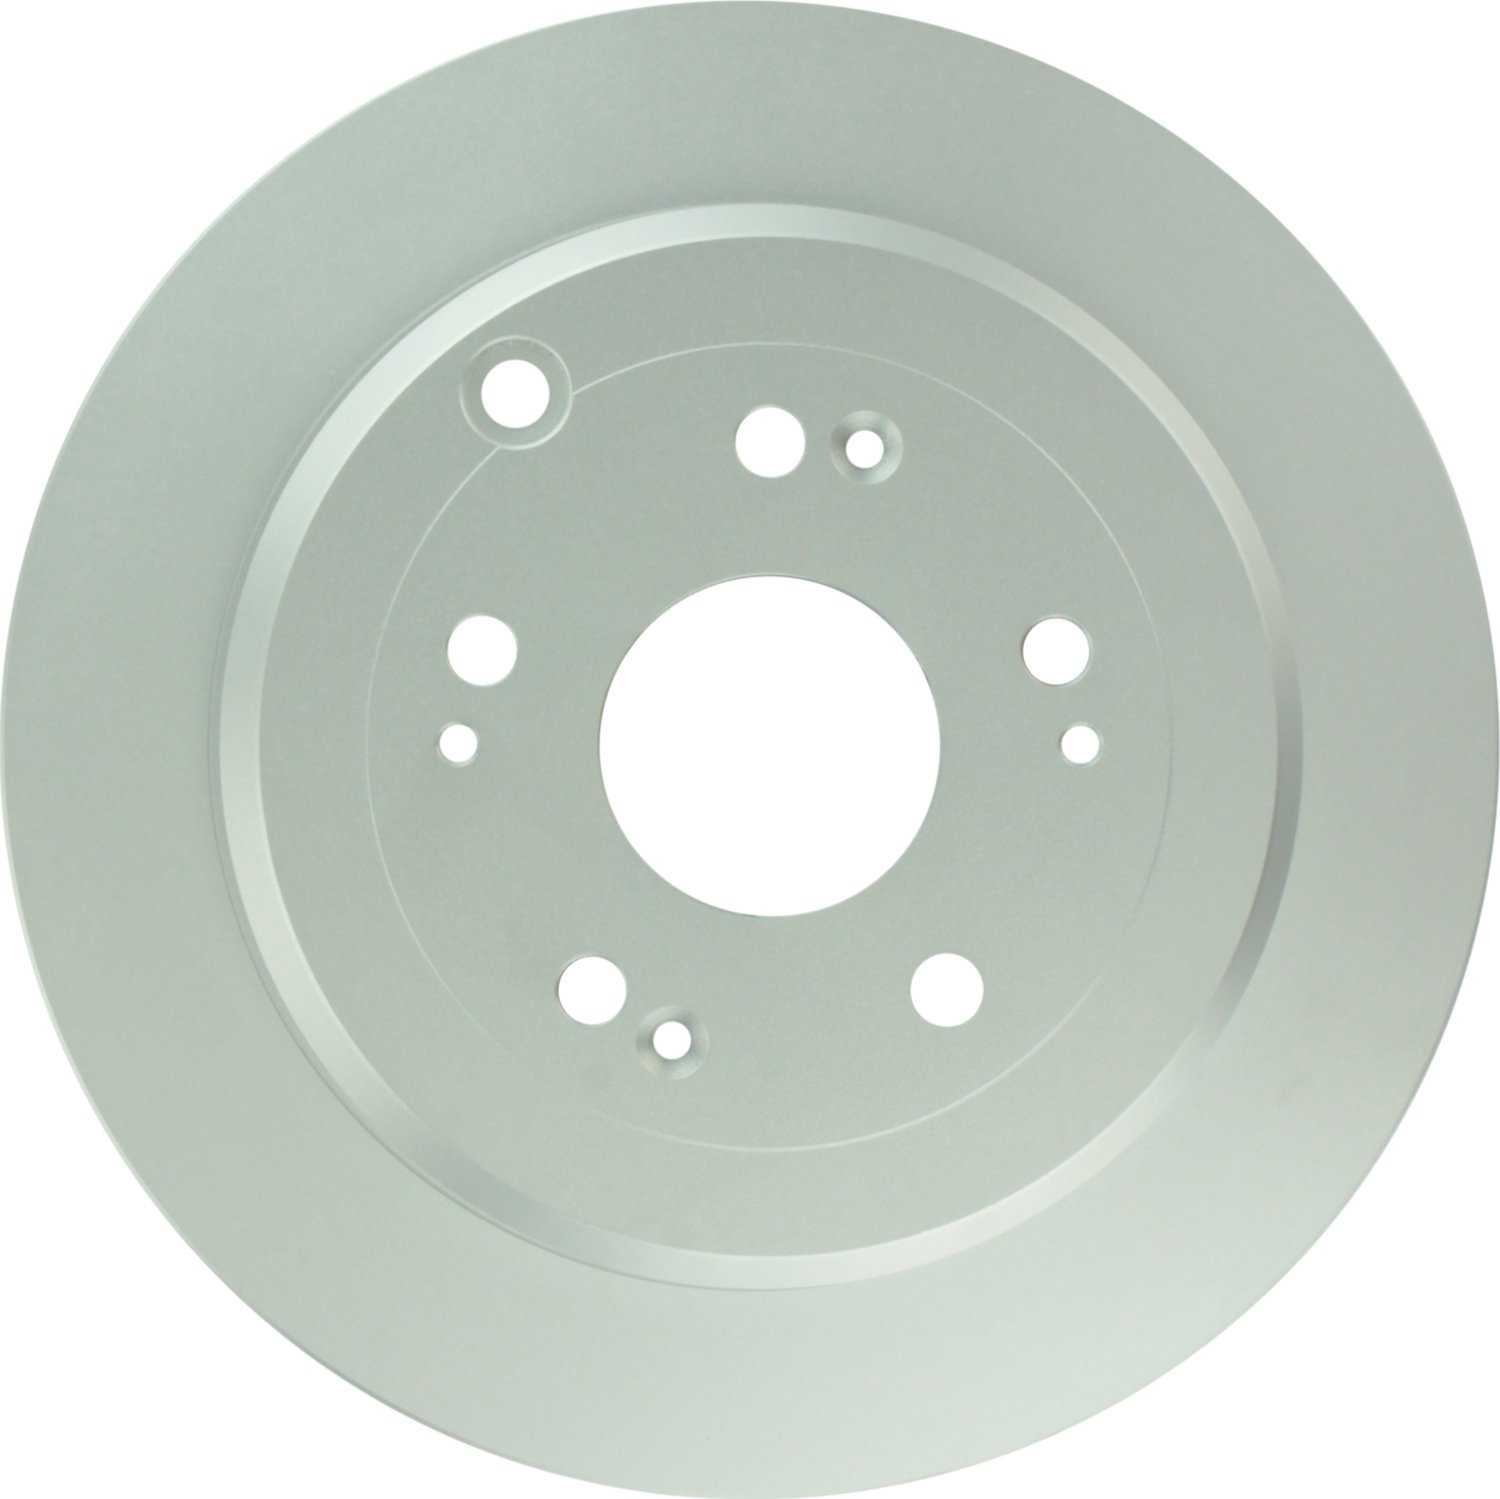 Bosch 26011549 QuietCast Premium Disc Brake Rotor, Rear